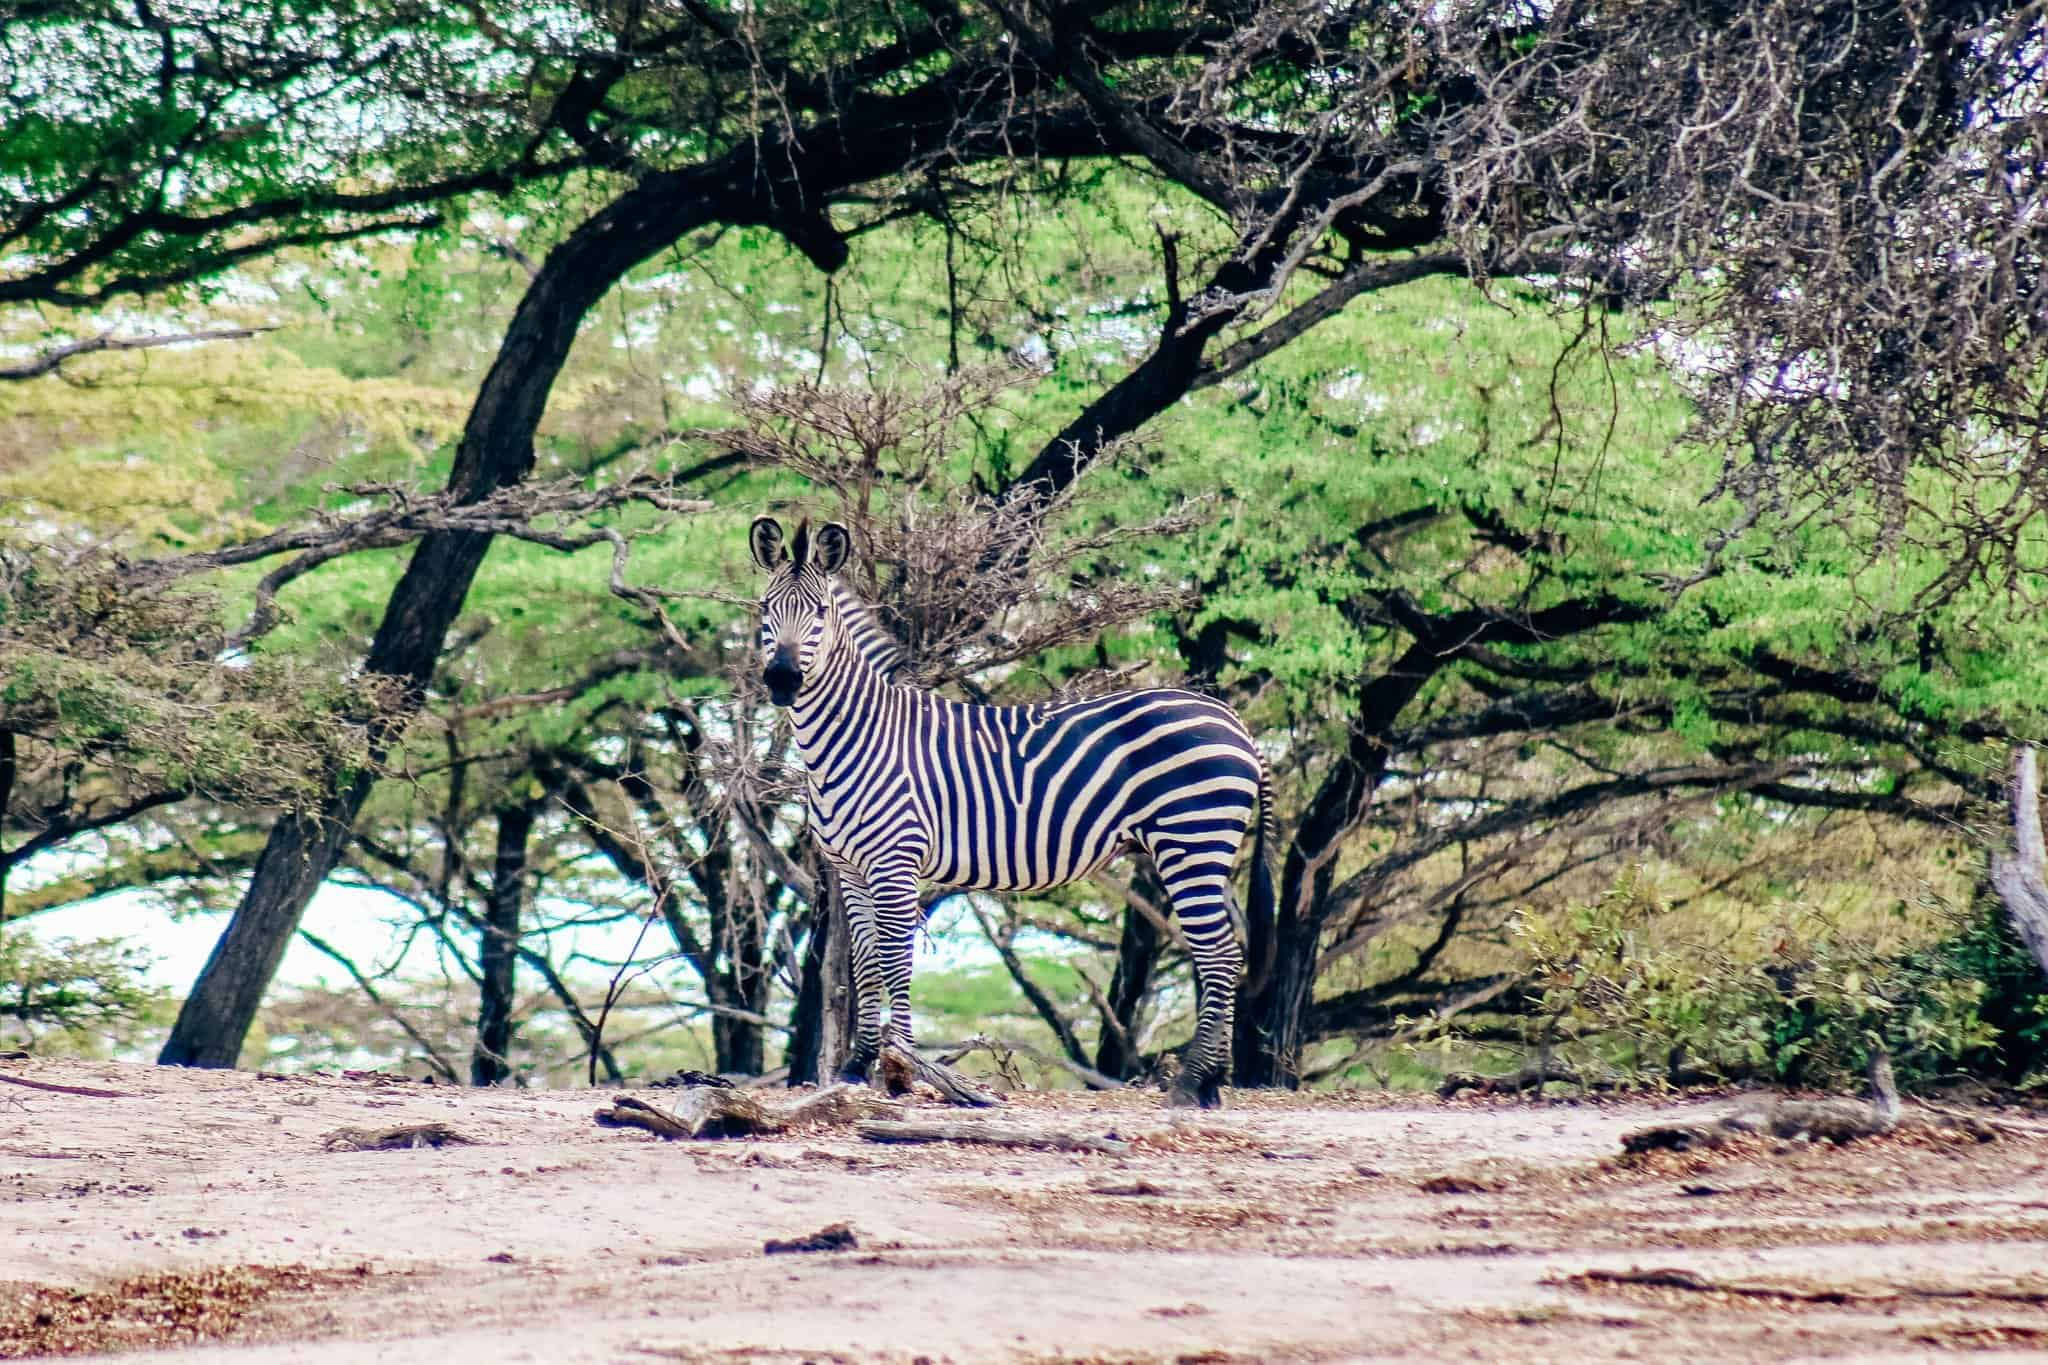 Zebra on African Safari Drive in the Selous Game Reserve